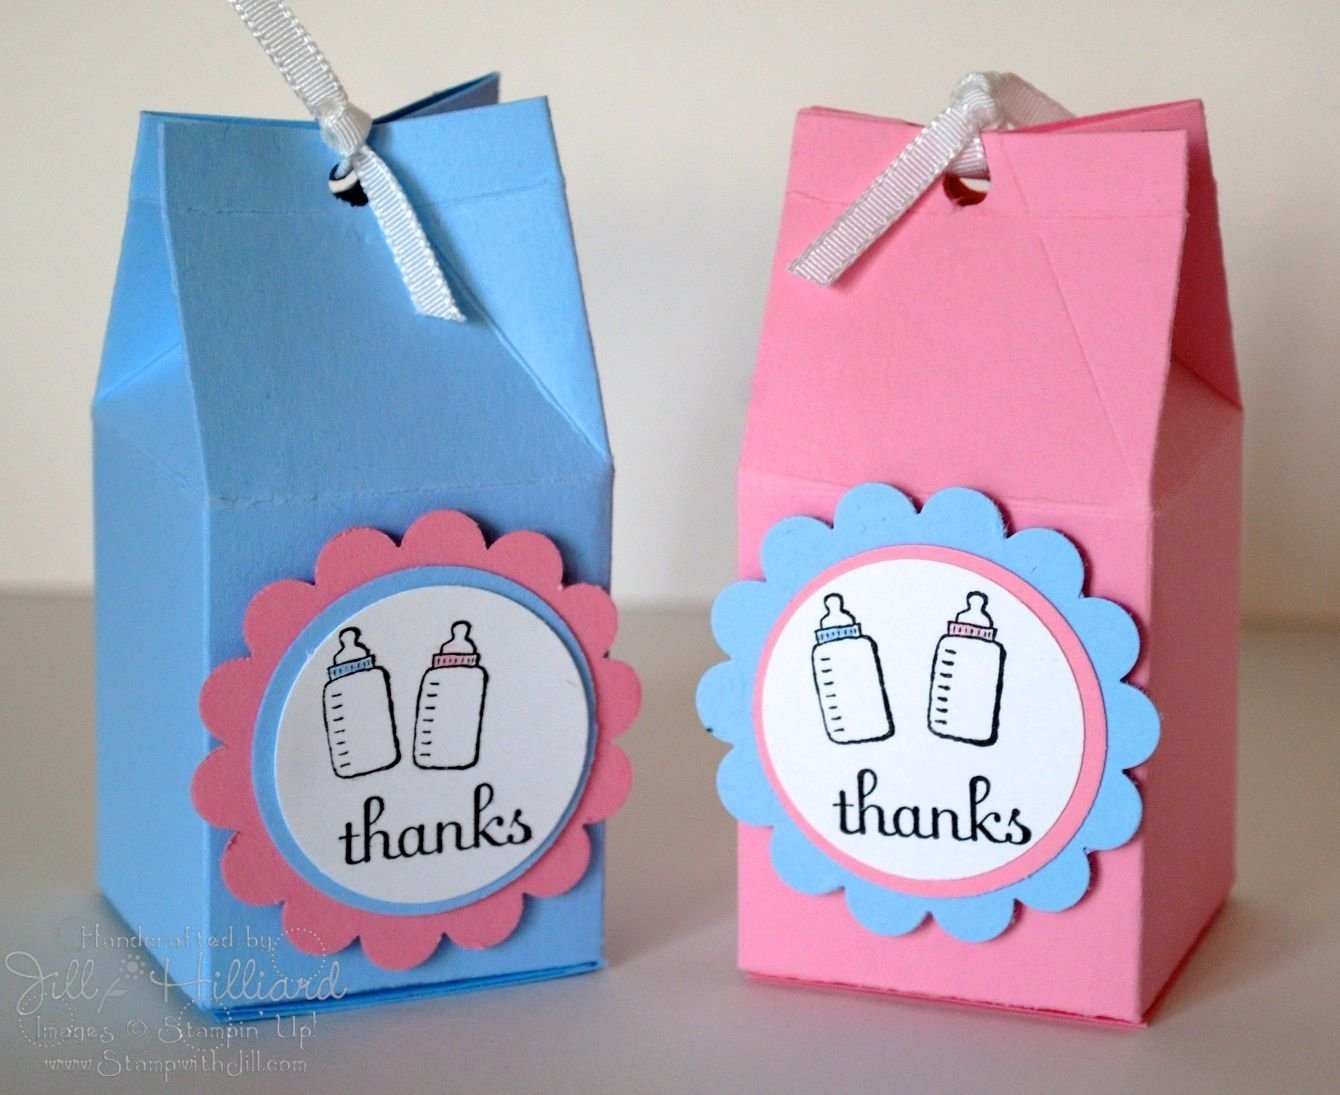 10 Elegant Ideas For Twin Baby Shower baby shower favors ideas google search crafts paper stamping 2021